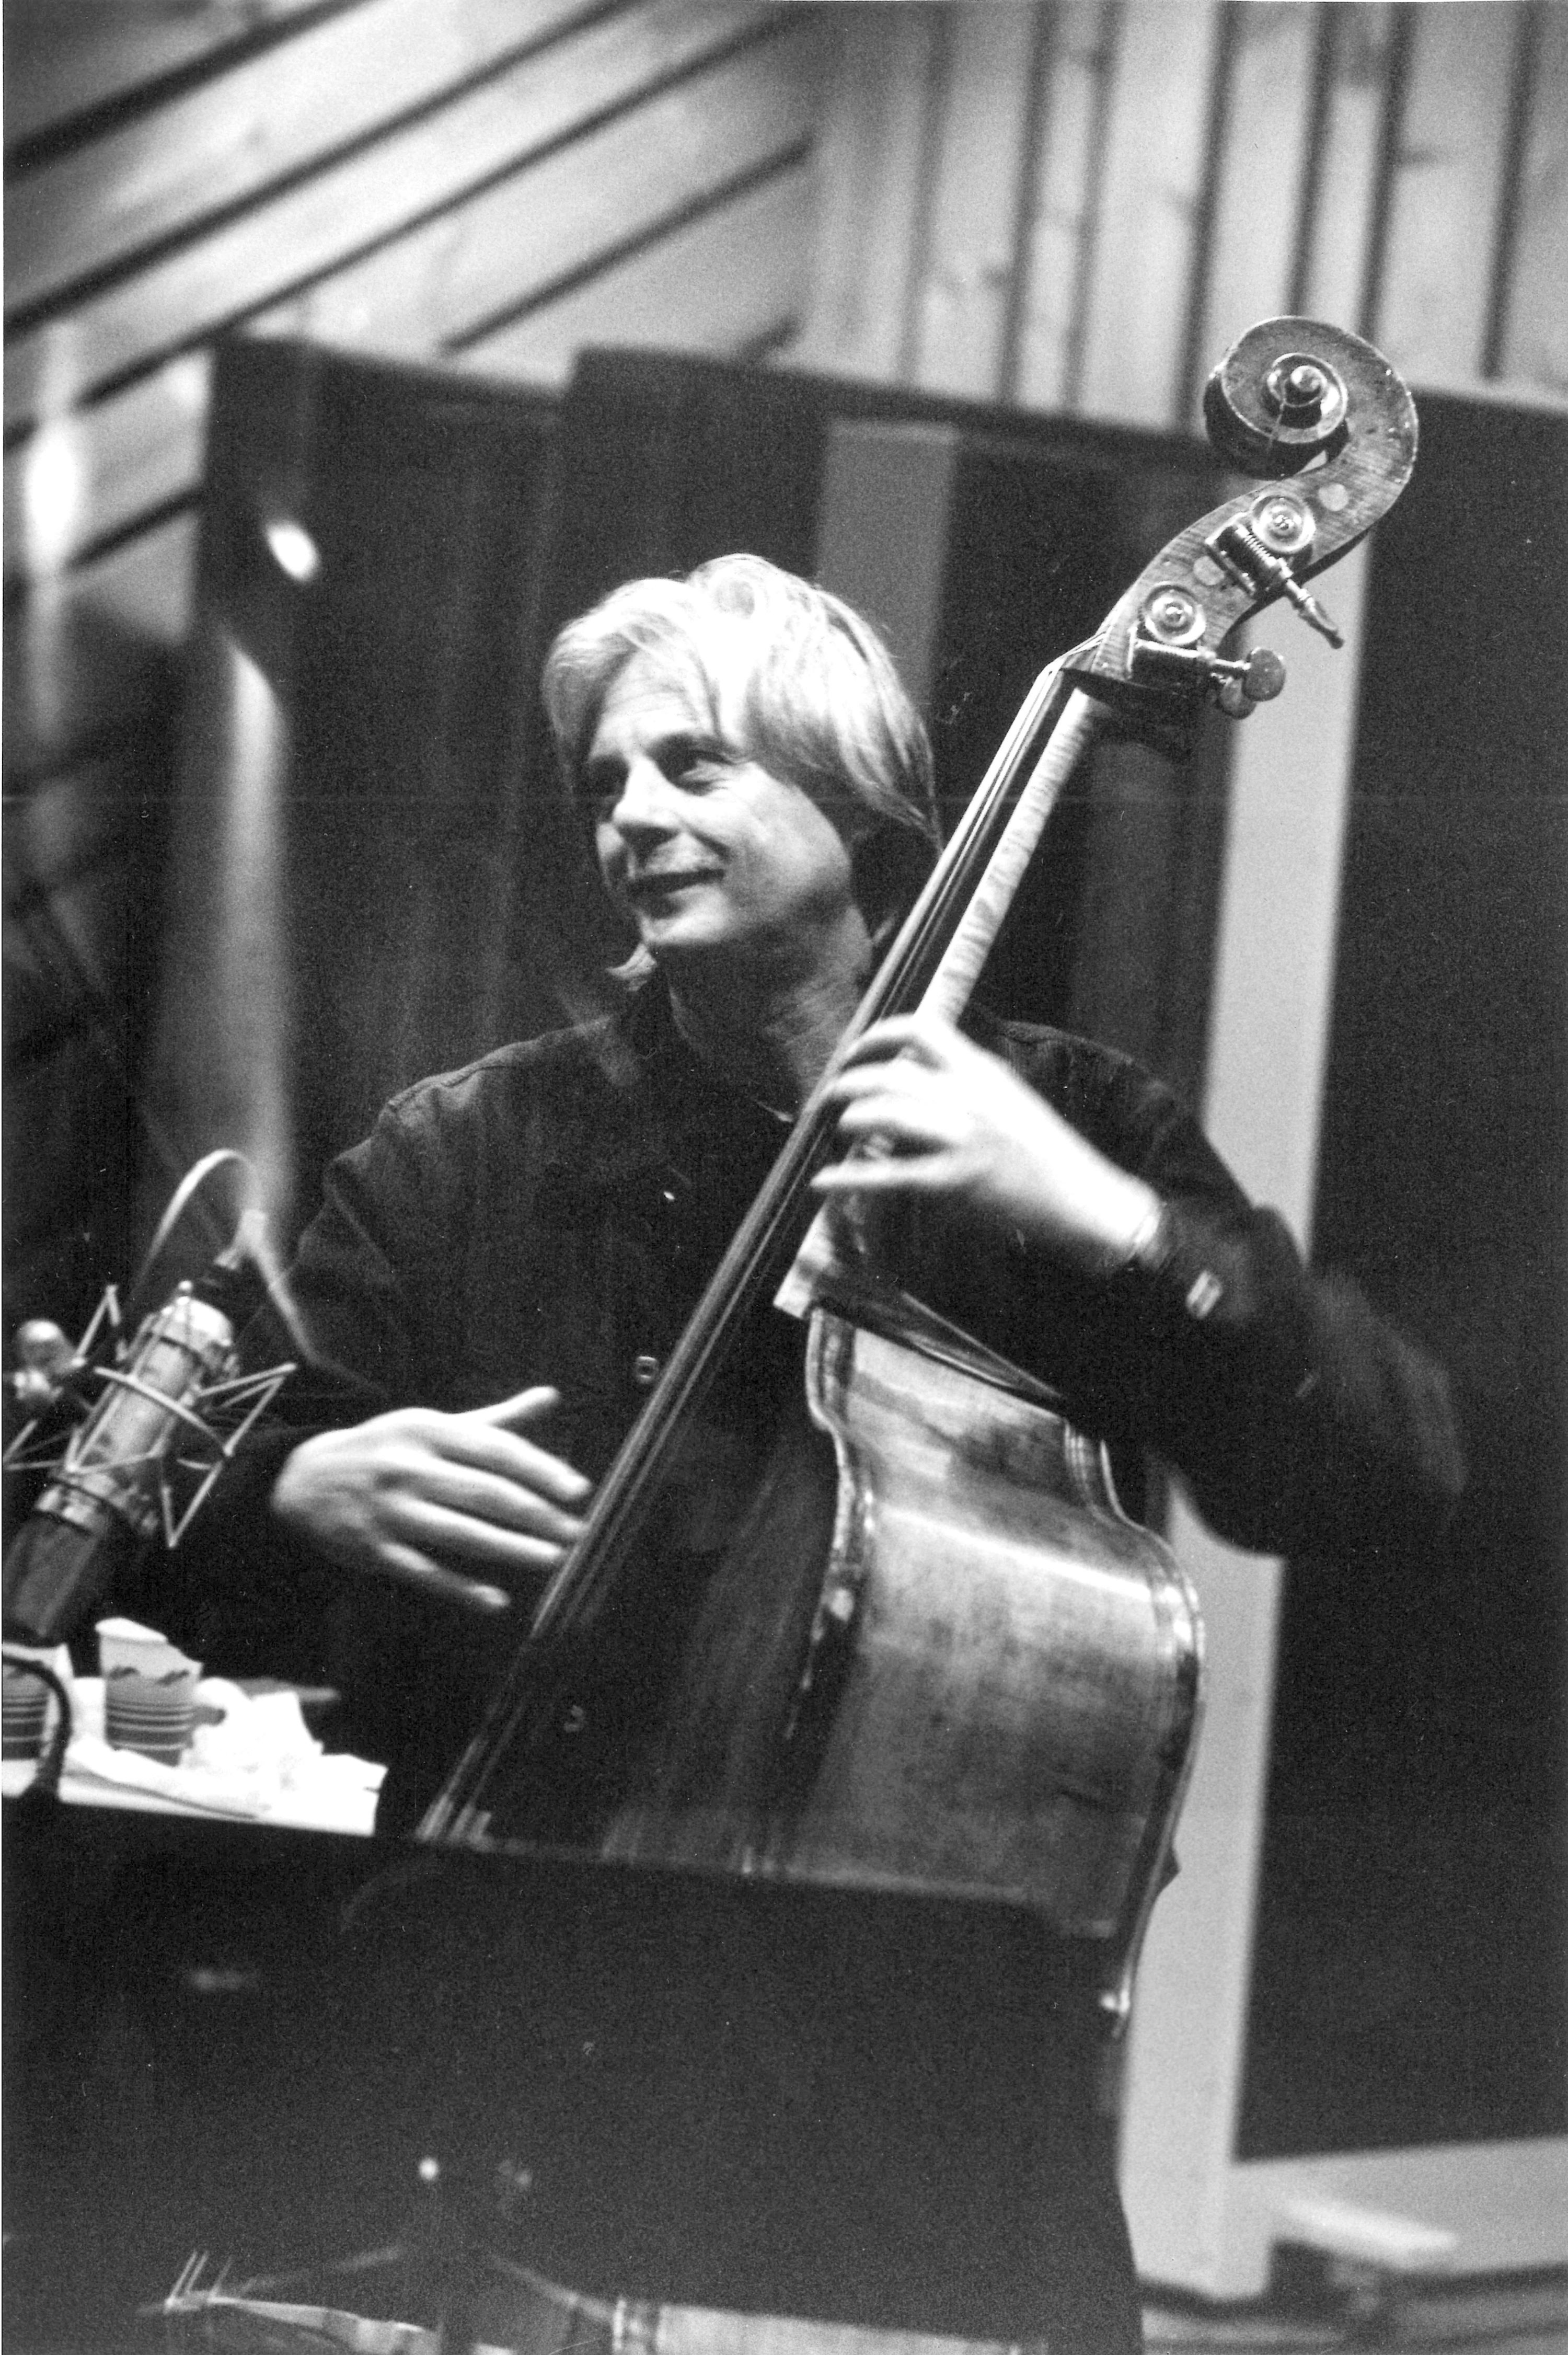 Manfred Eicher on the double bass